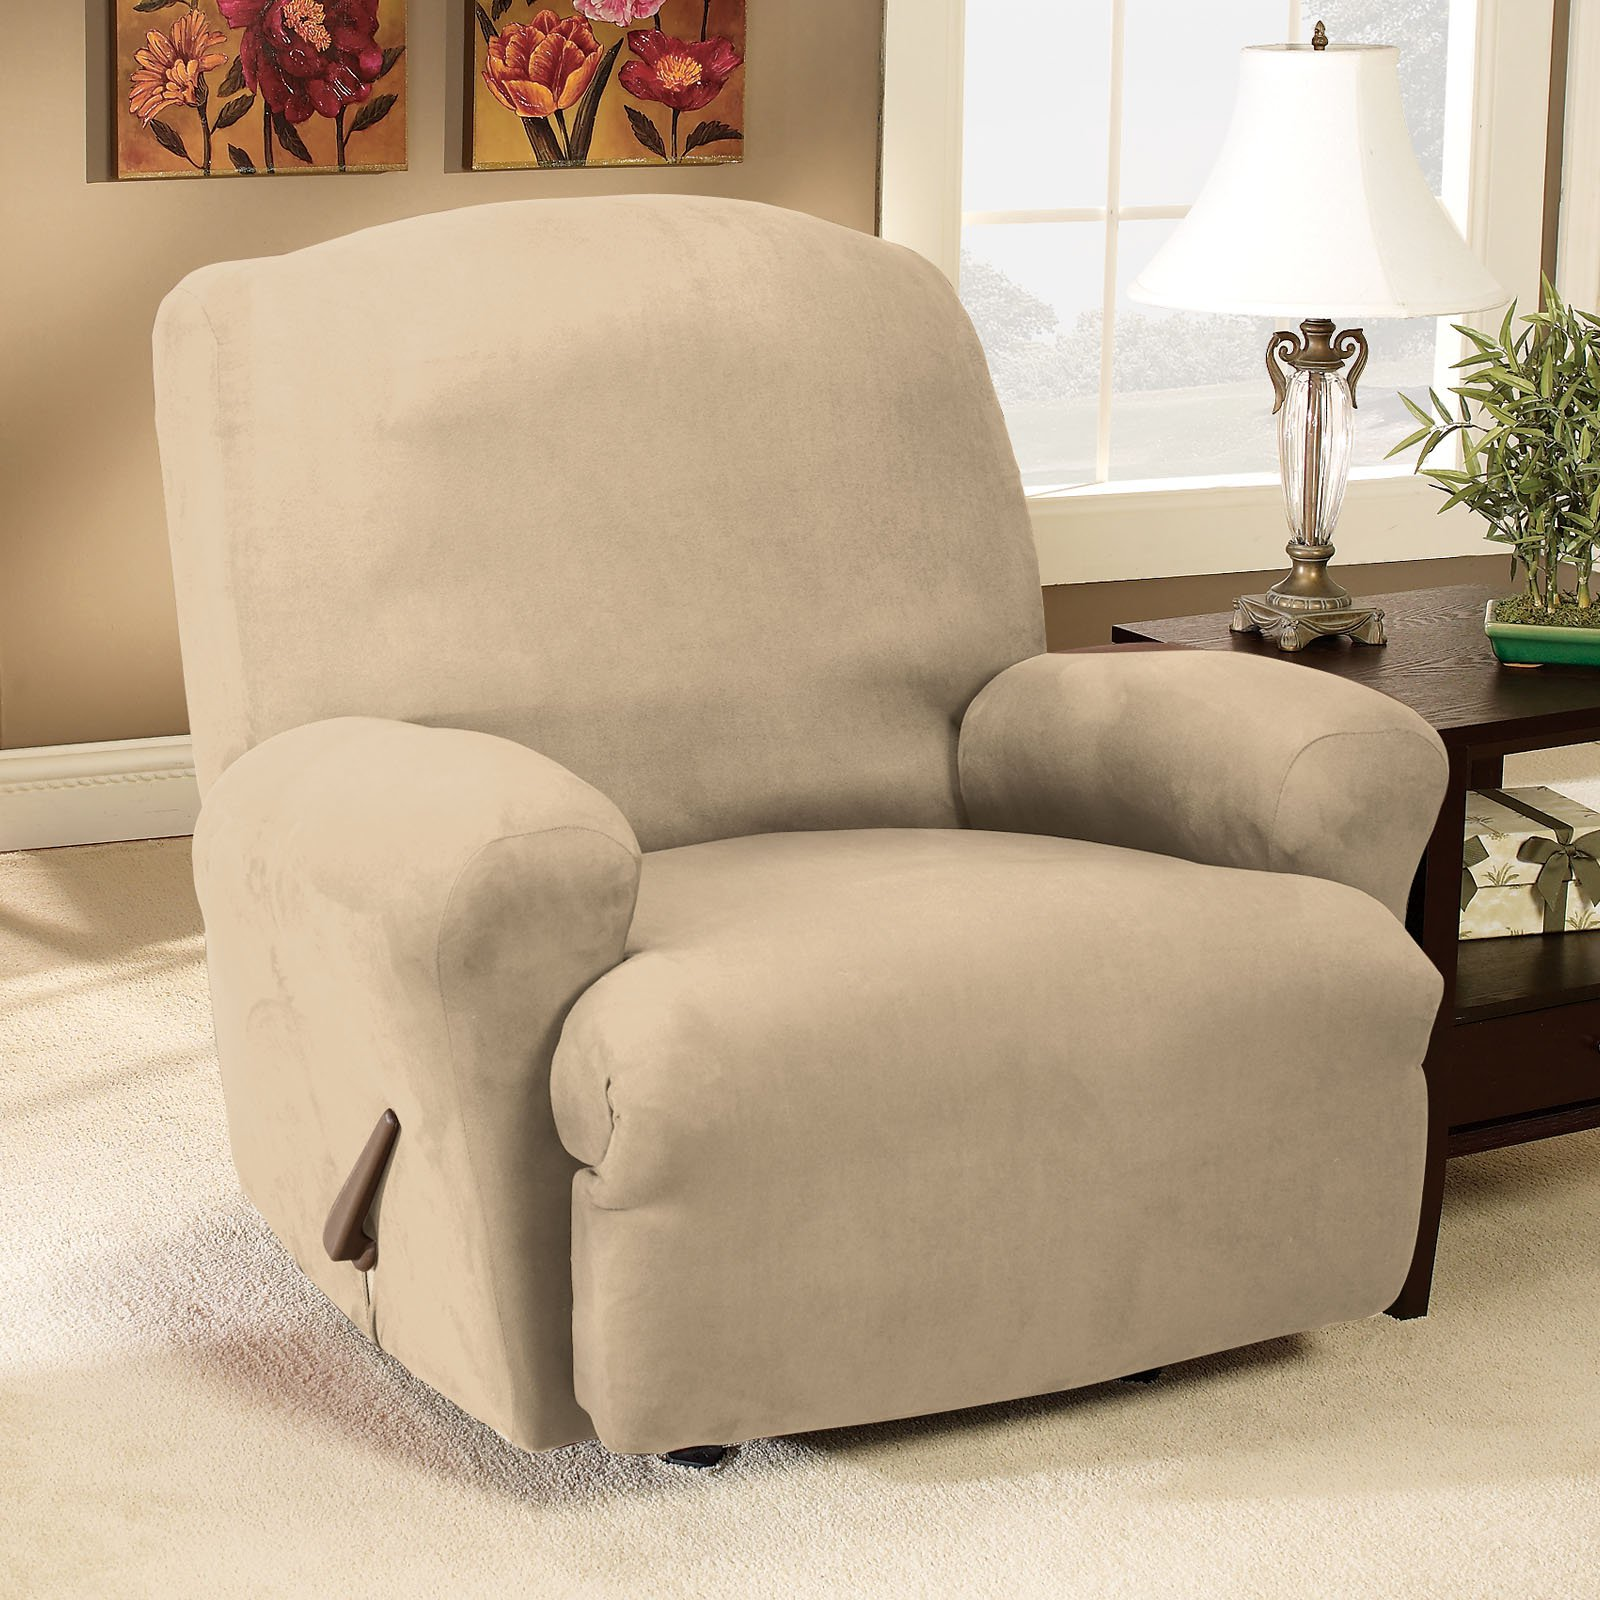 amazon dp for throw recliner ultimate slipcover sure kitchen com gray home waterproof fit quilted